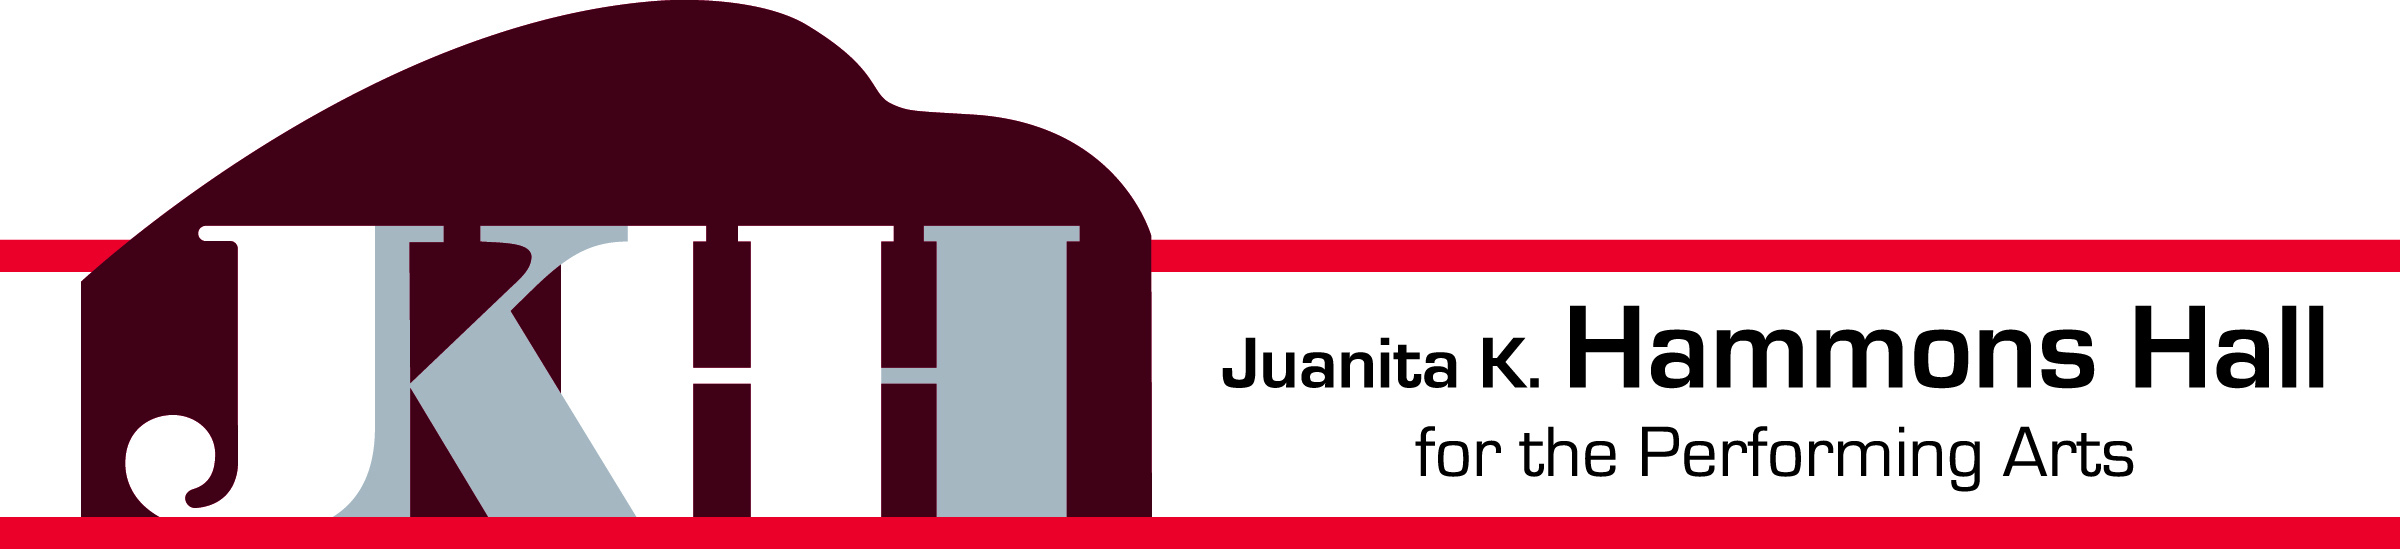 Juanita K Hammons Hall 2018 Logo